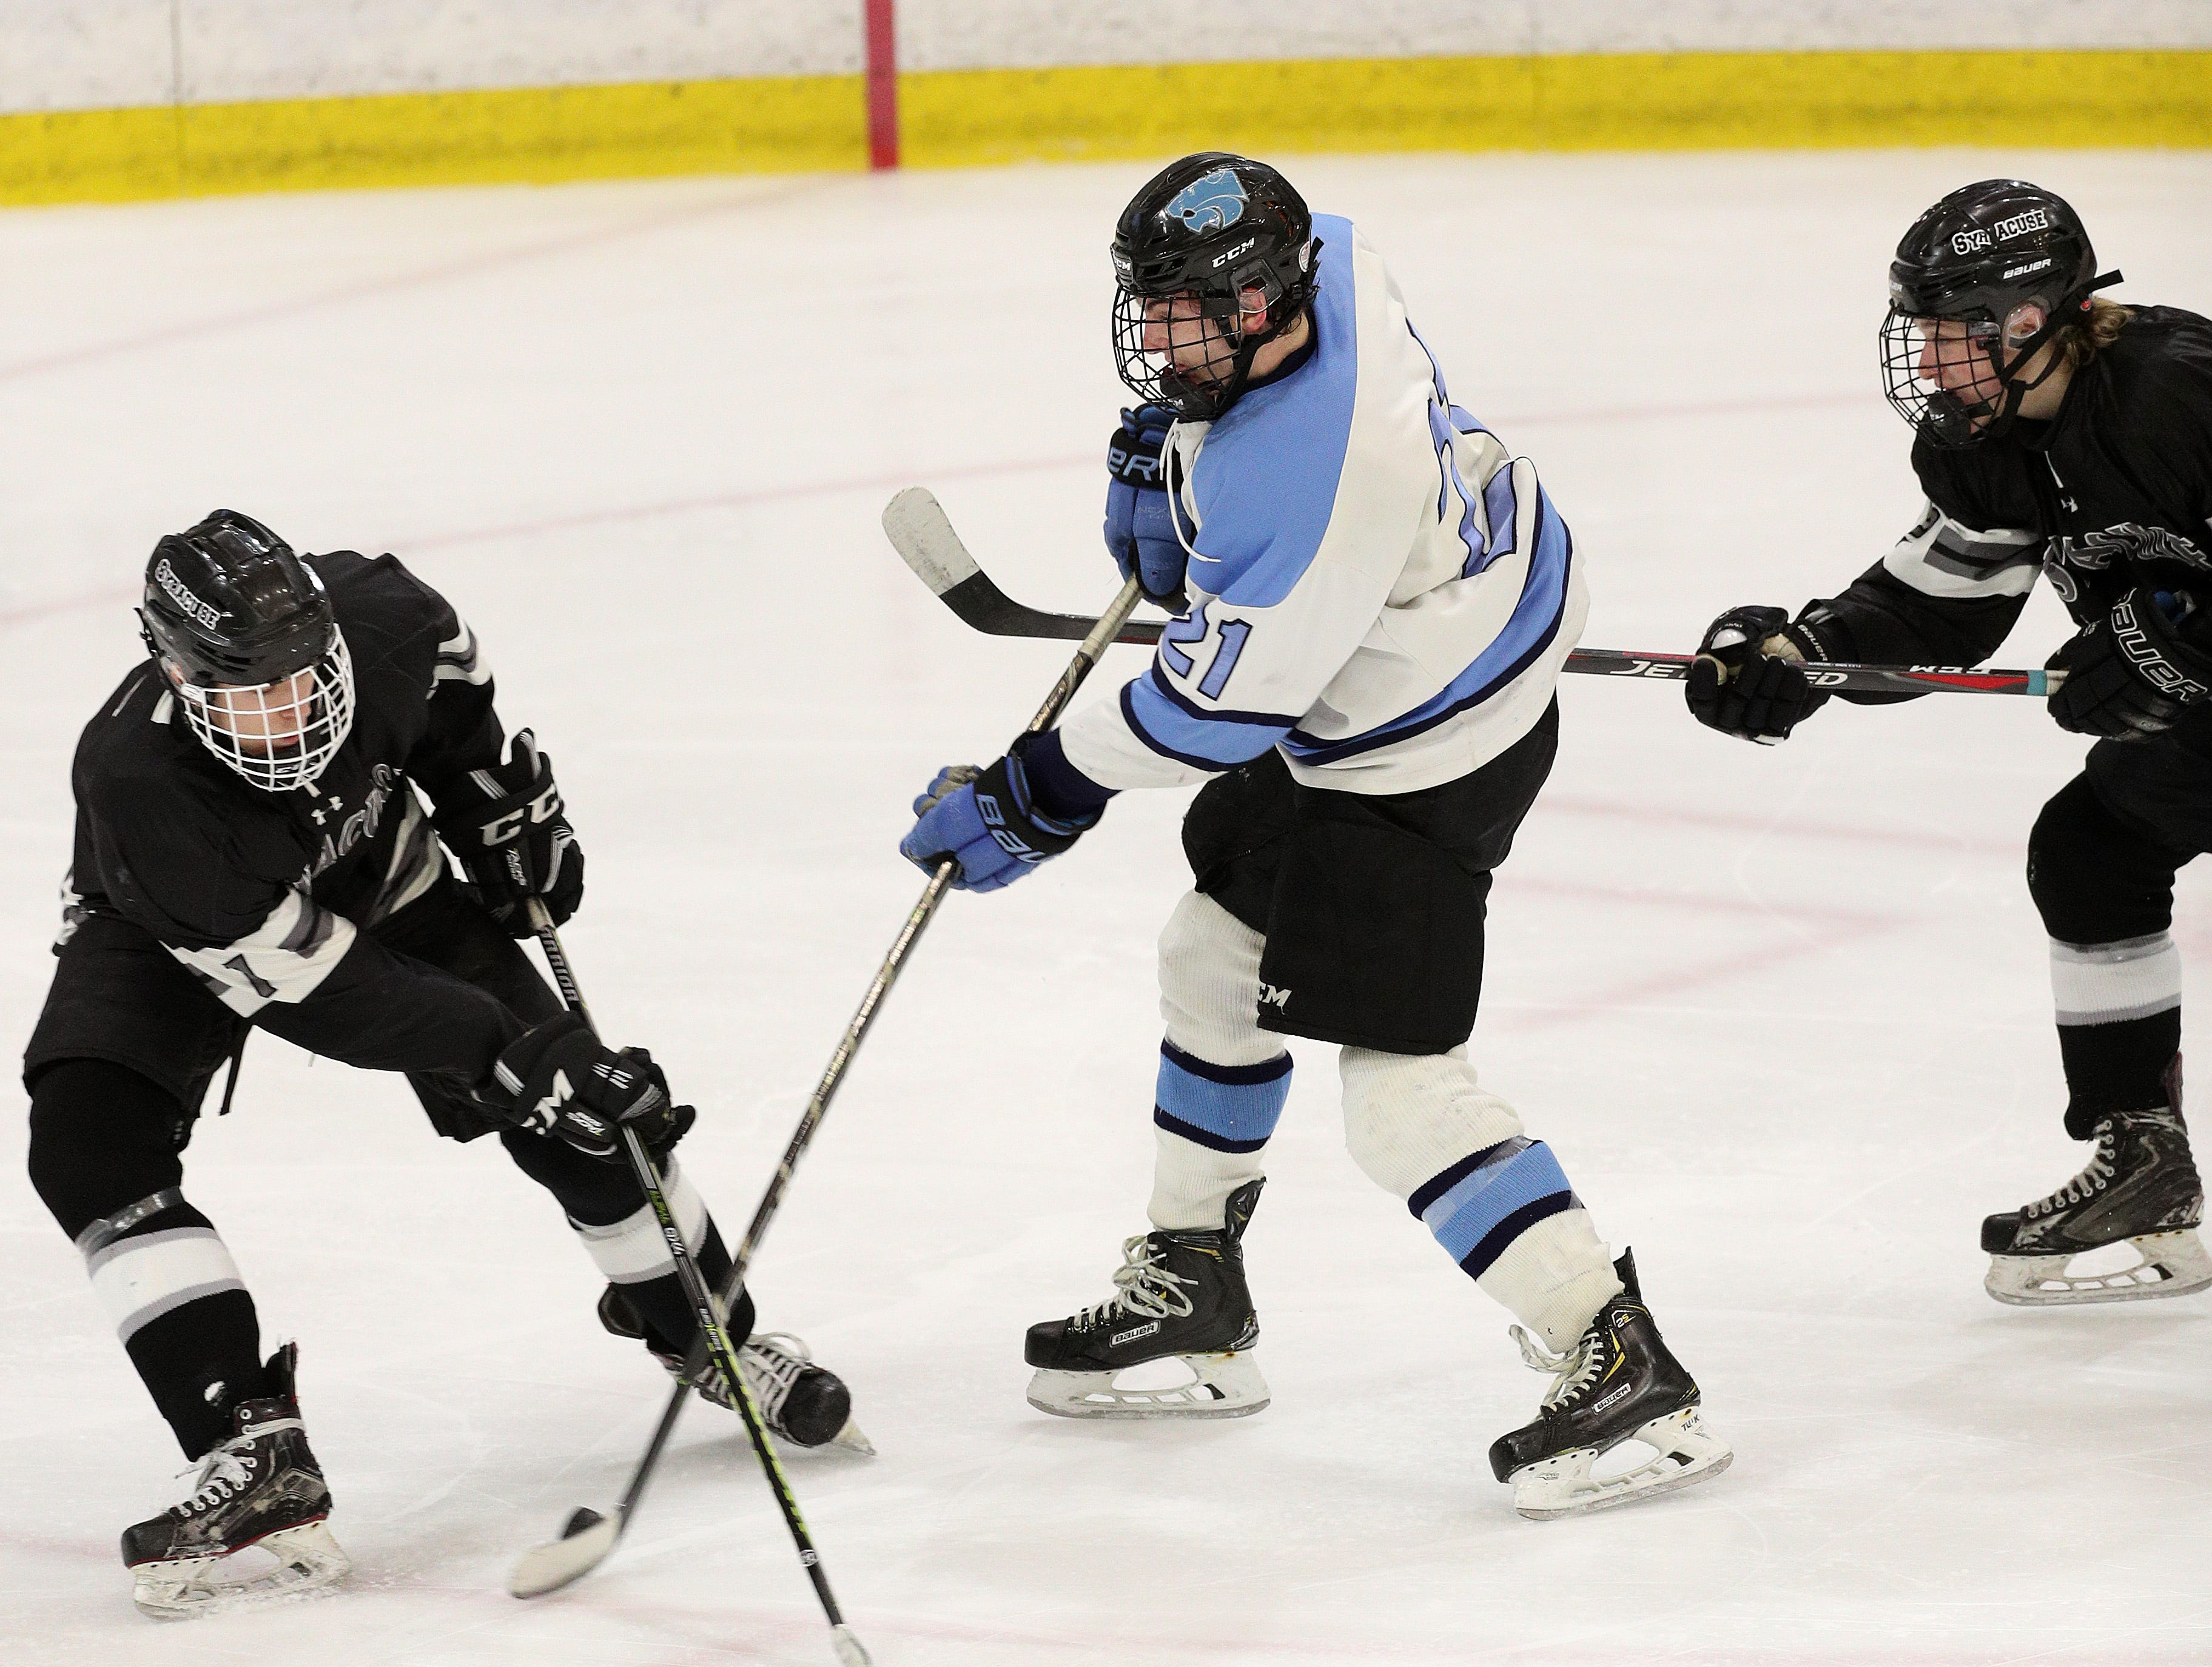 Suffern's Kyle Foresta gets off a shot in traffic against Syracuse.